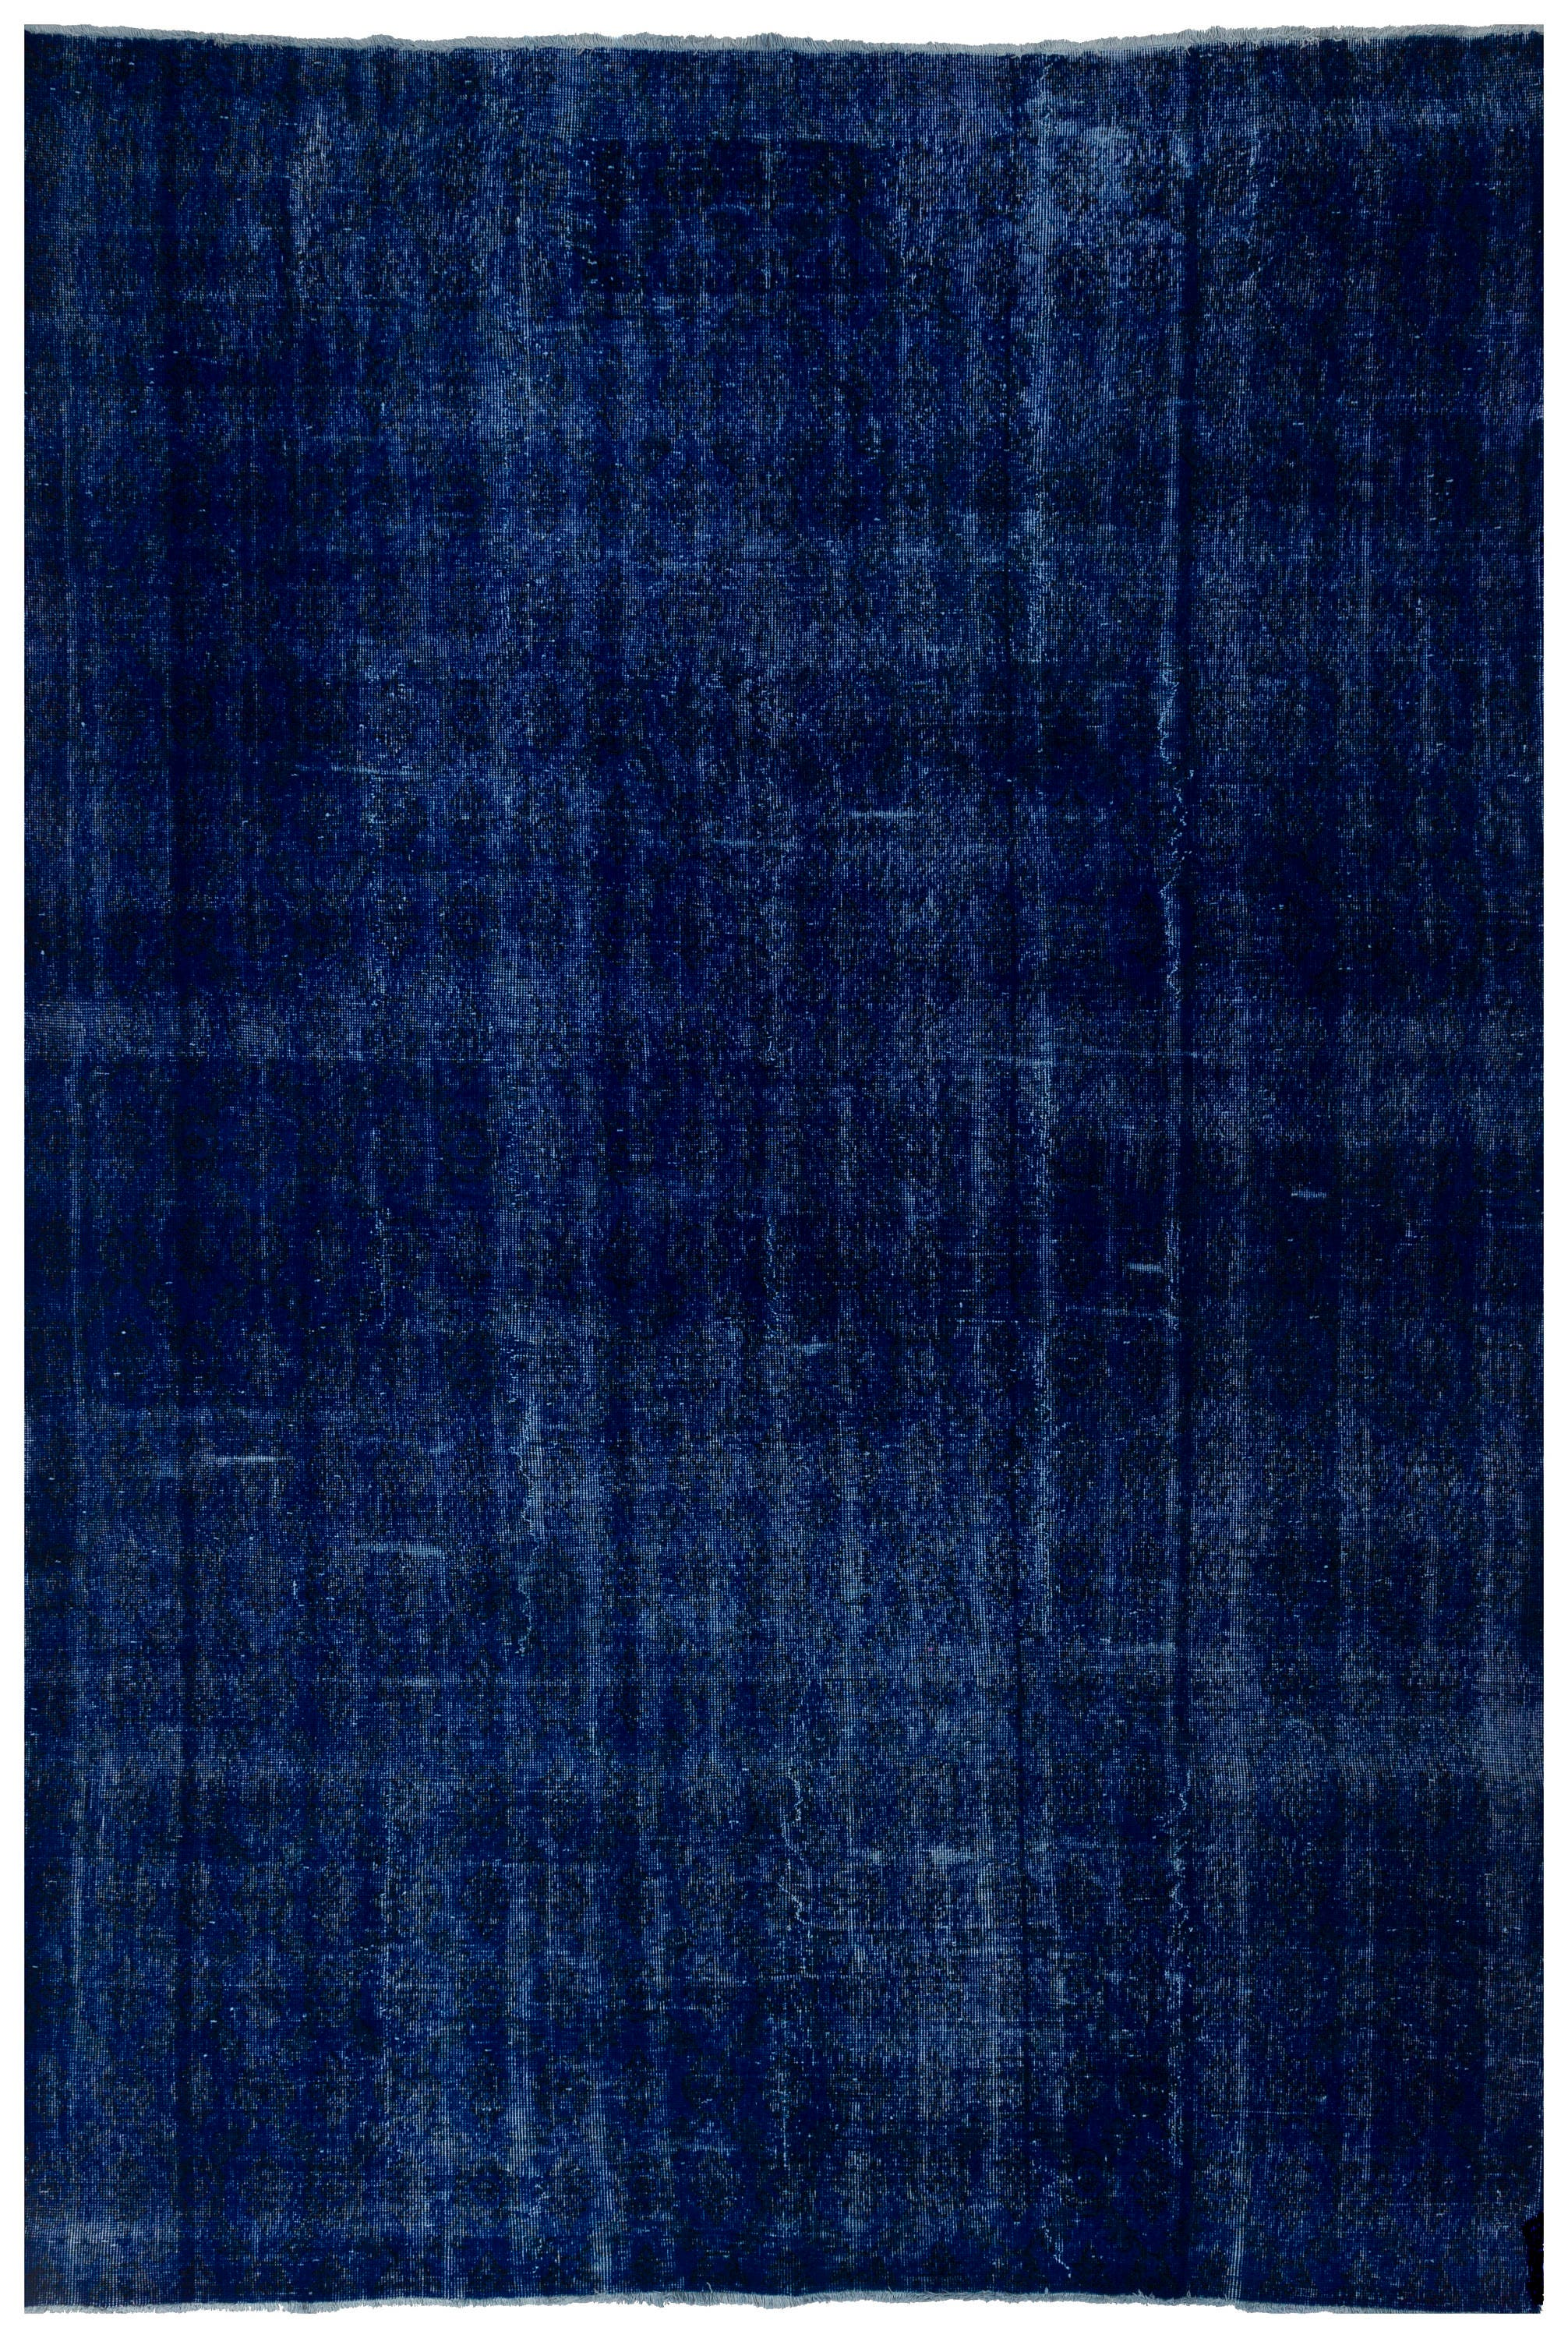 xxx navy mats cortes do rug area market indoor outdoor world blue rugs category